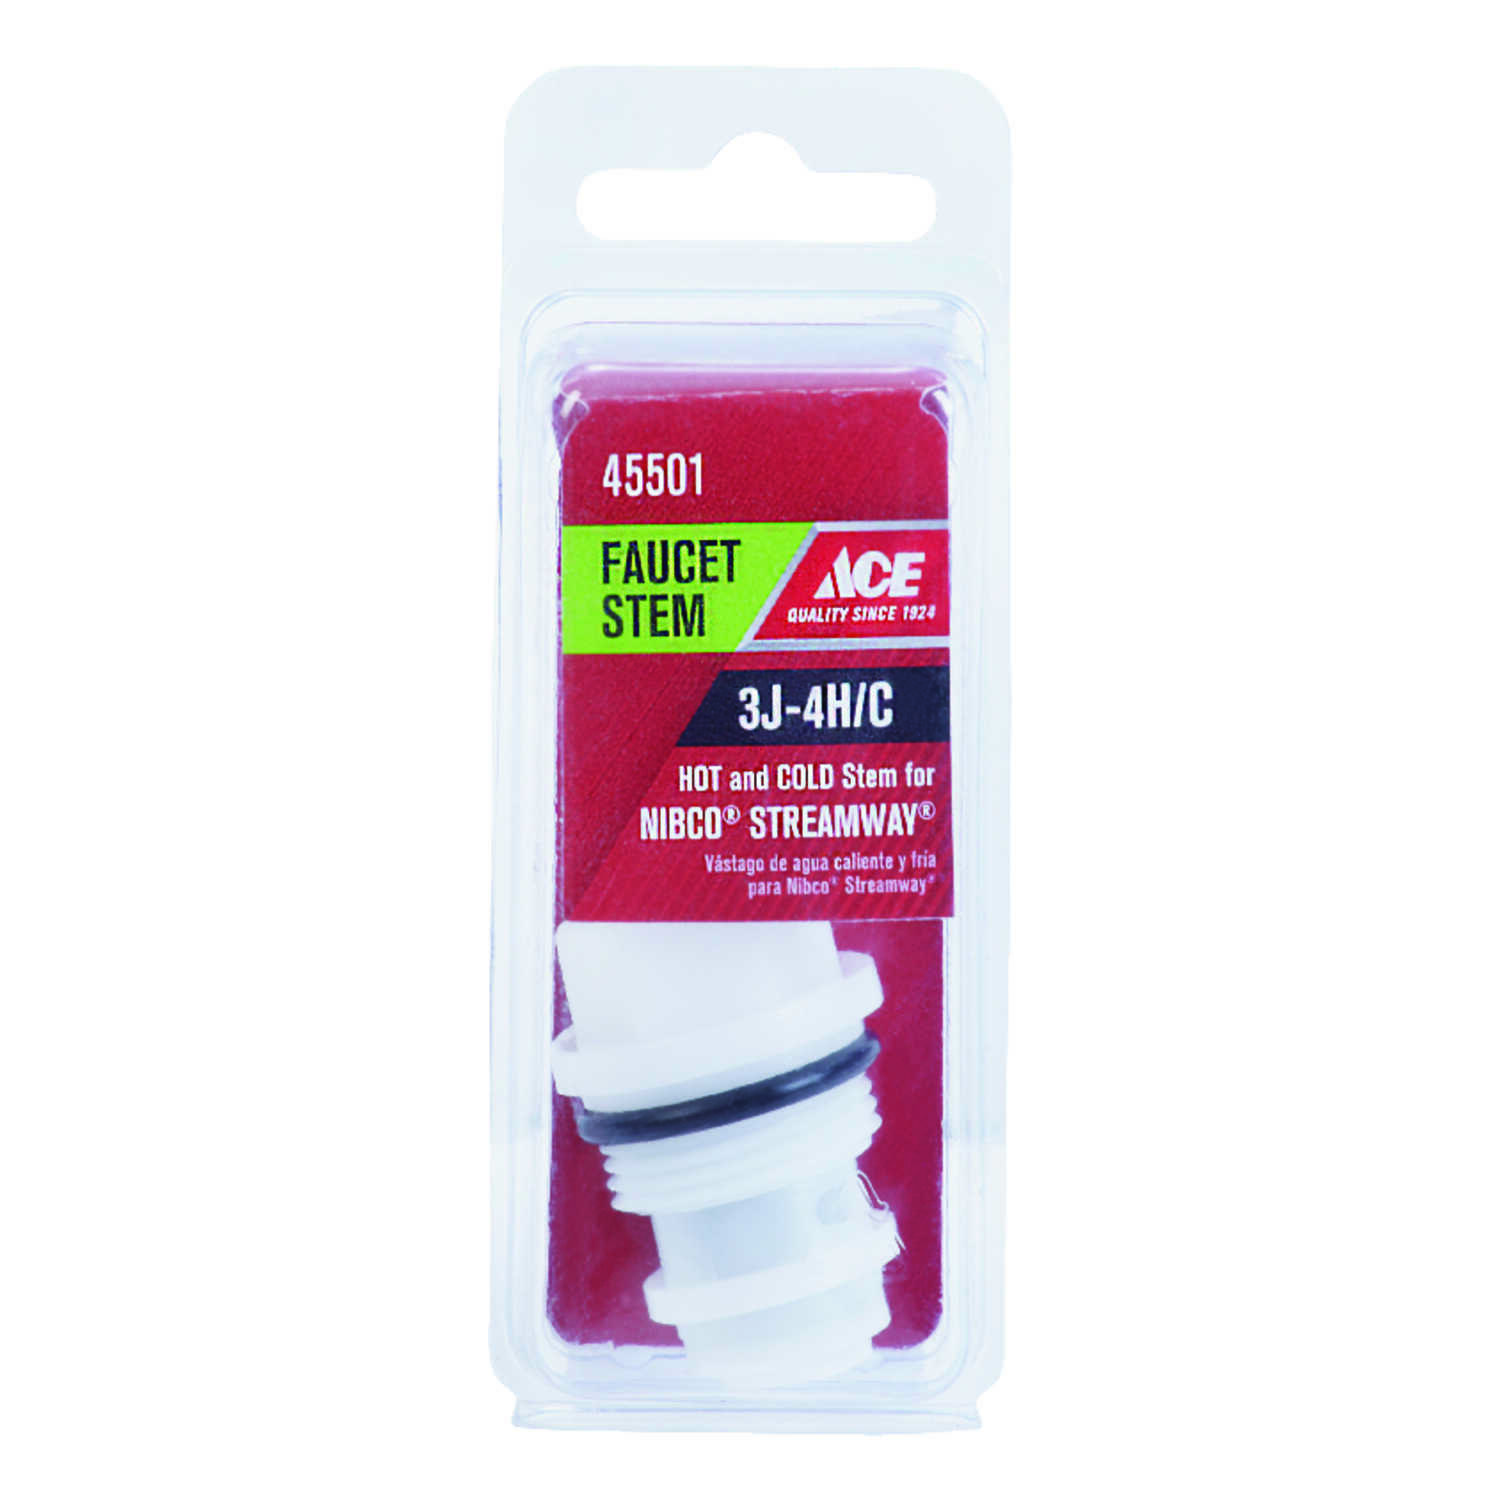 Ace  Hot and Cold  3J-4H/C  Faucet Cartridge  For Nibco & Streamway